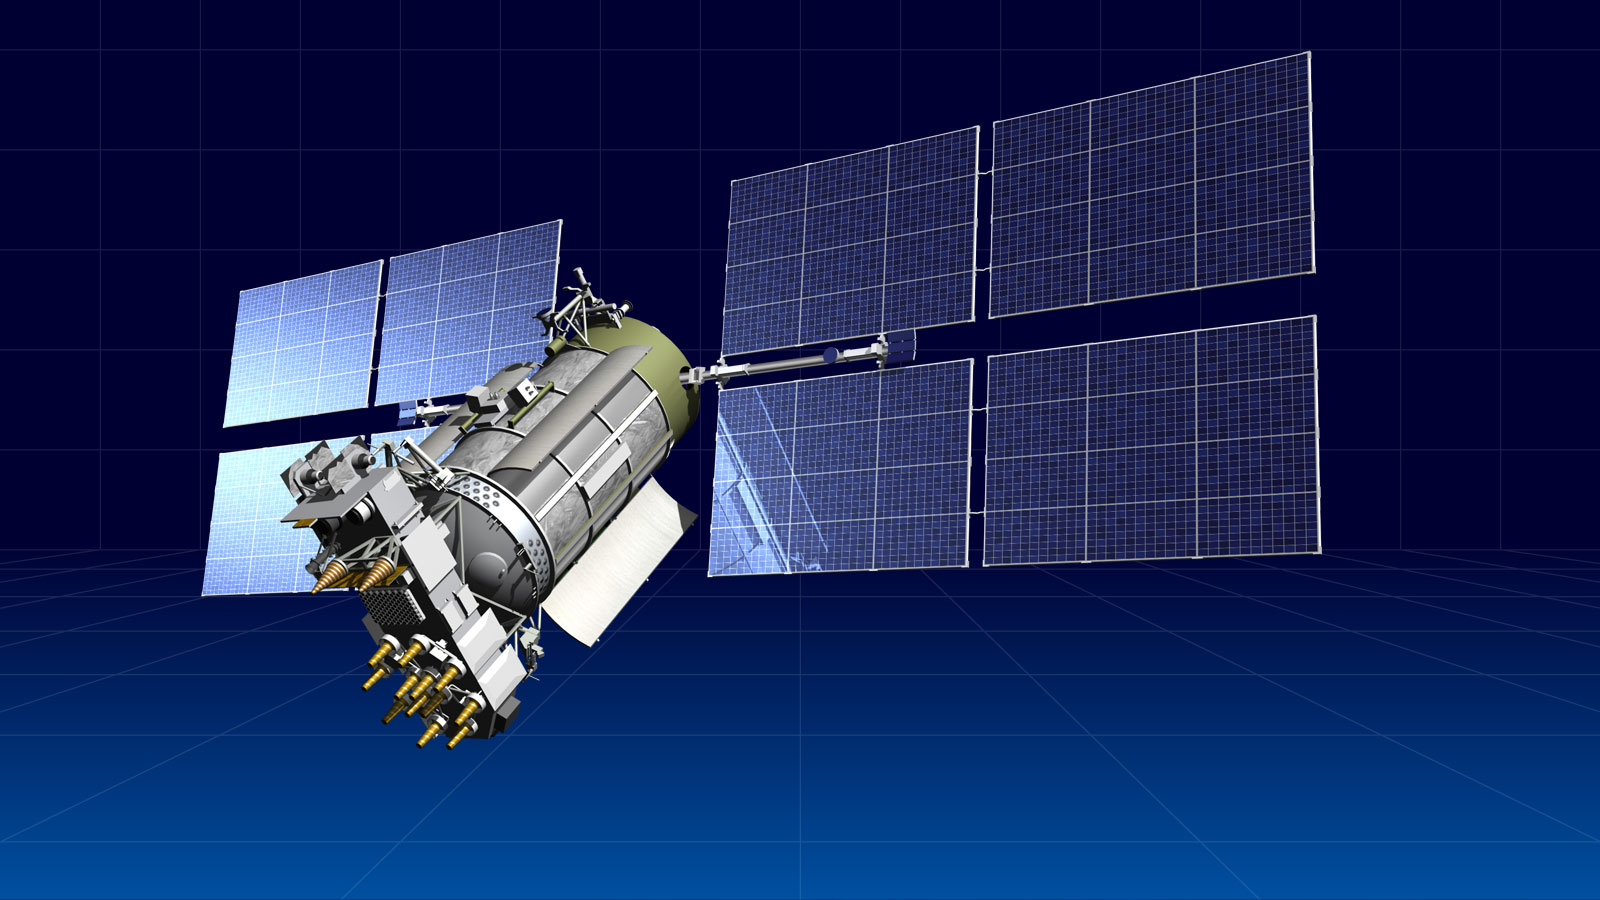 Recently Launched GLONASS-M Becomes Operational